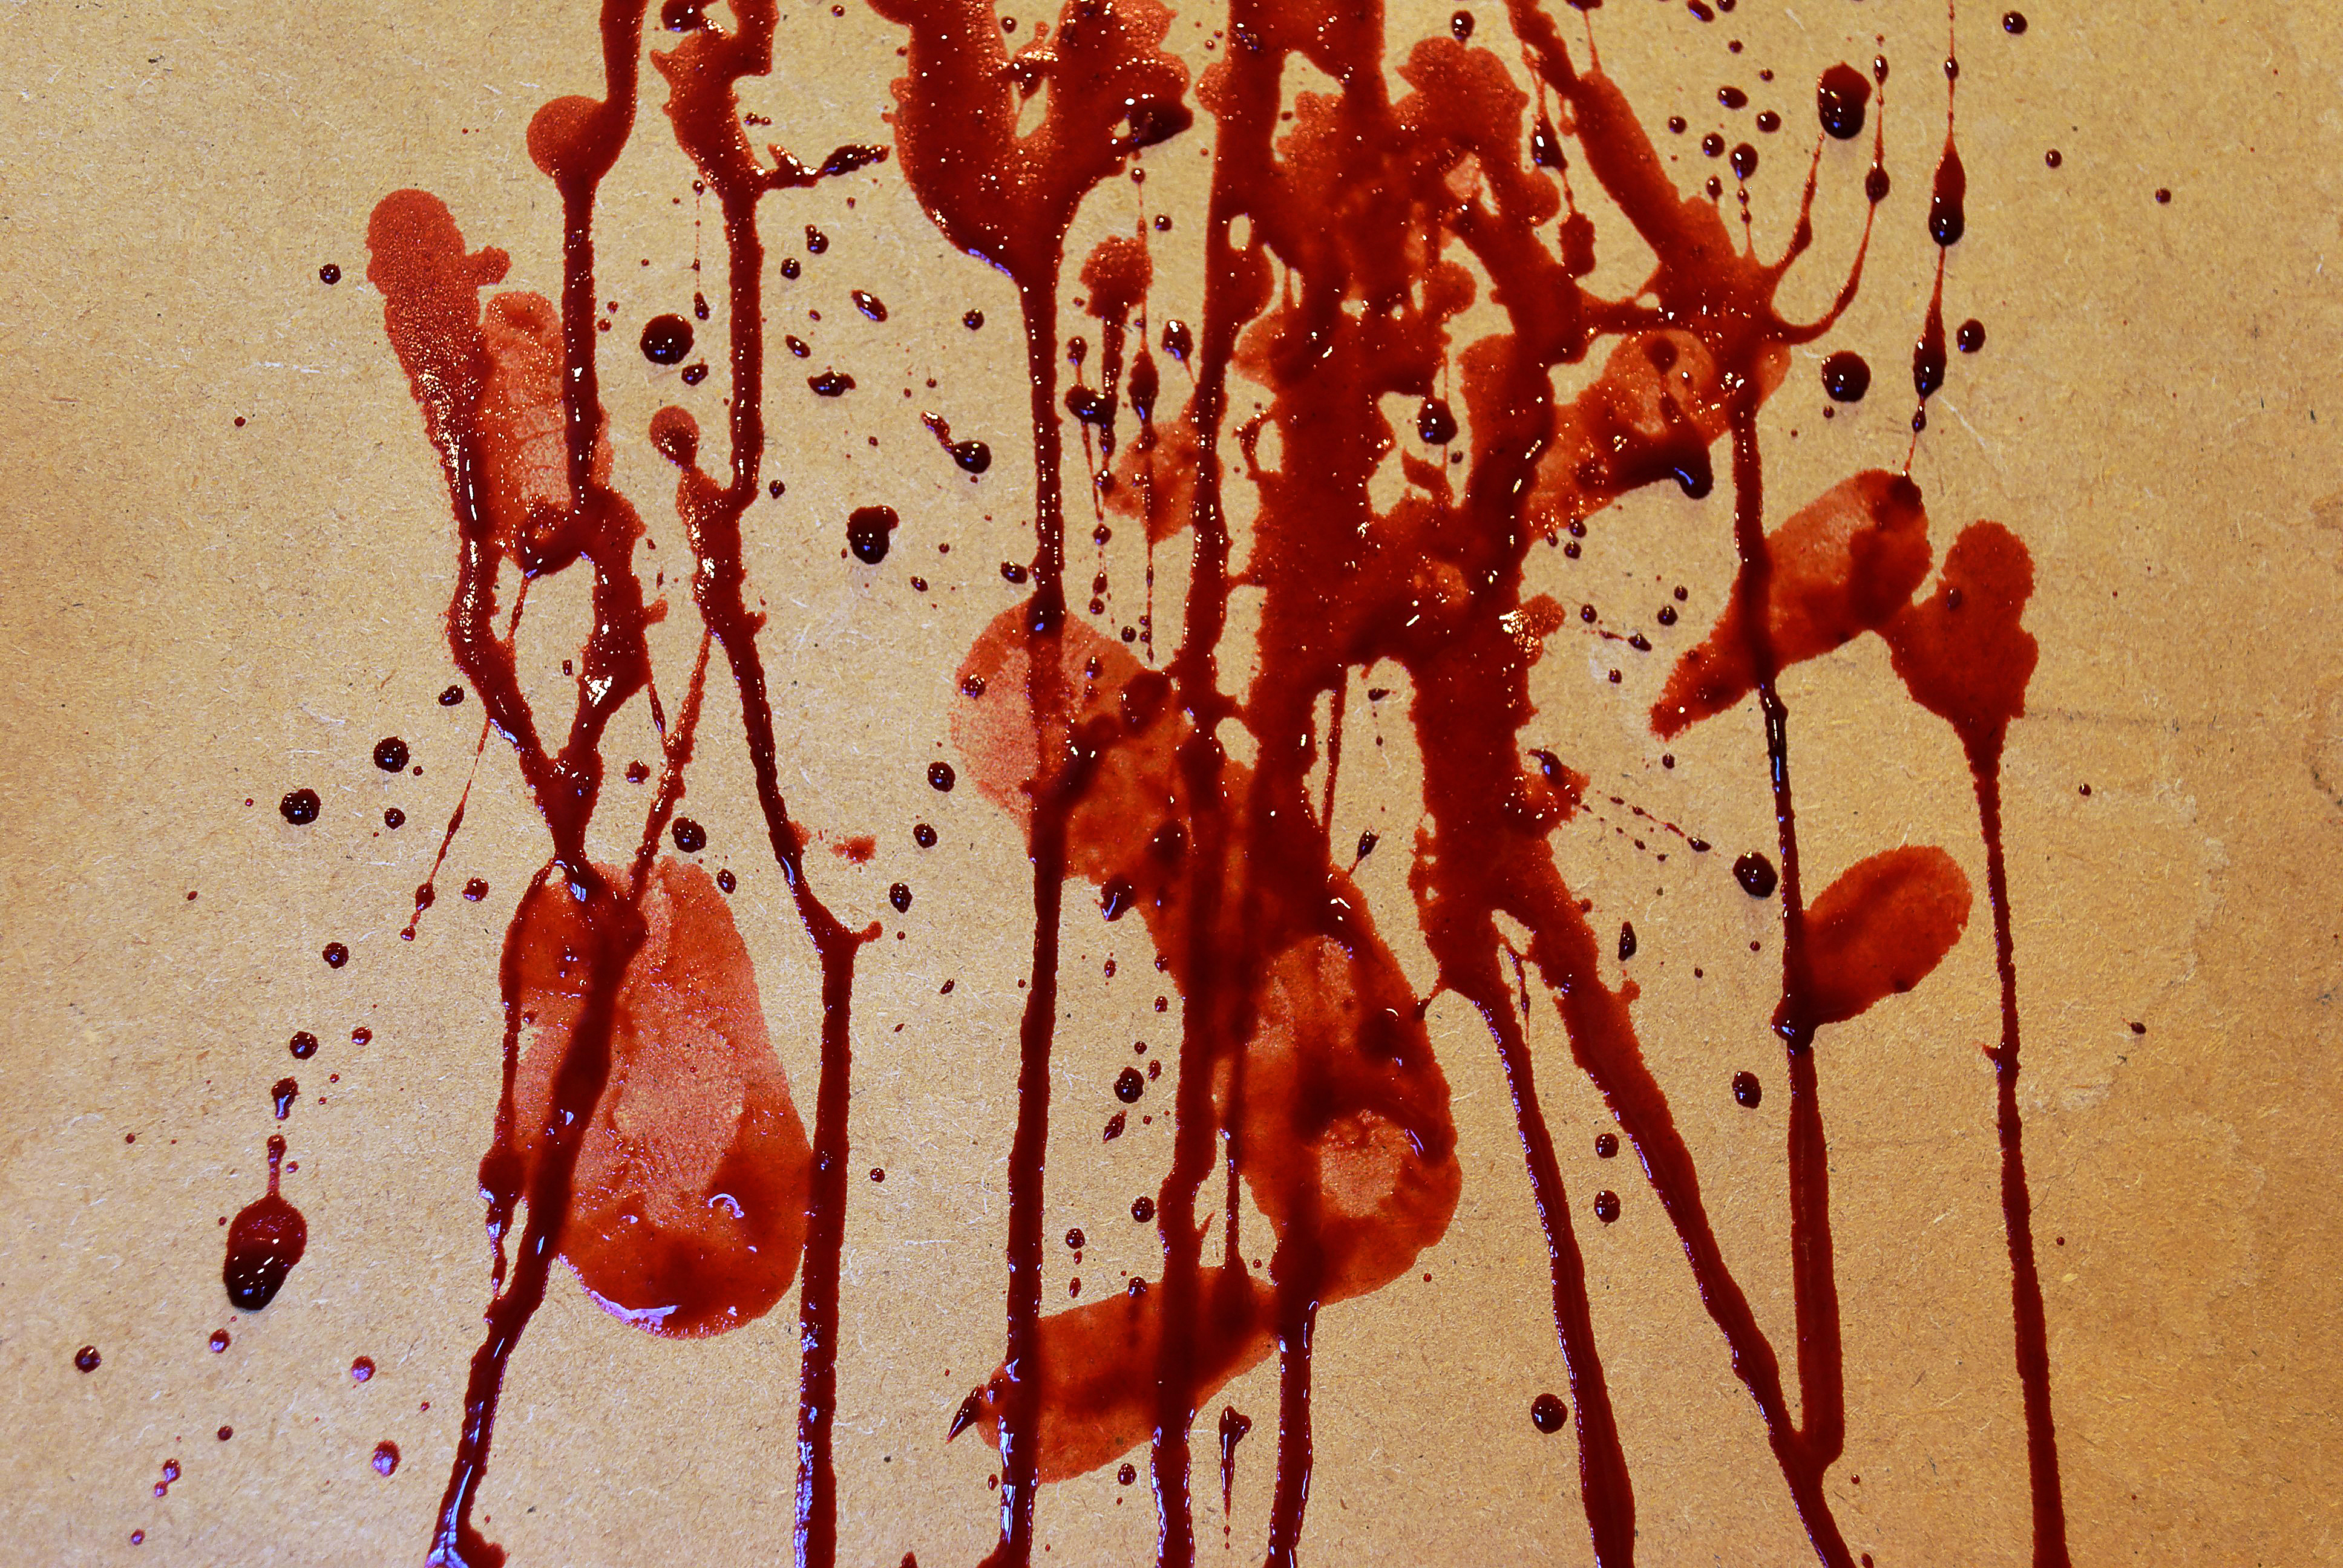 Breaking Point How Much Blood Can The Human Body Lose